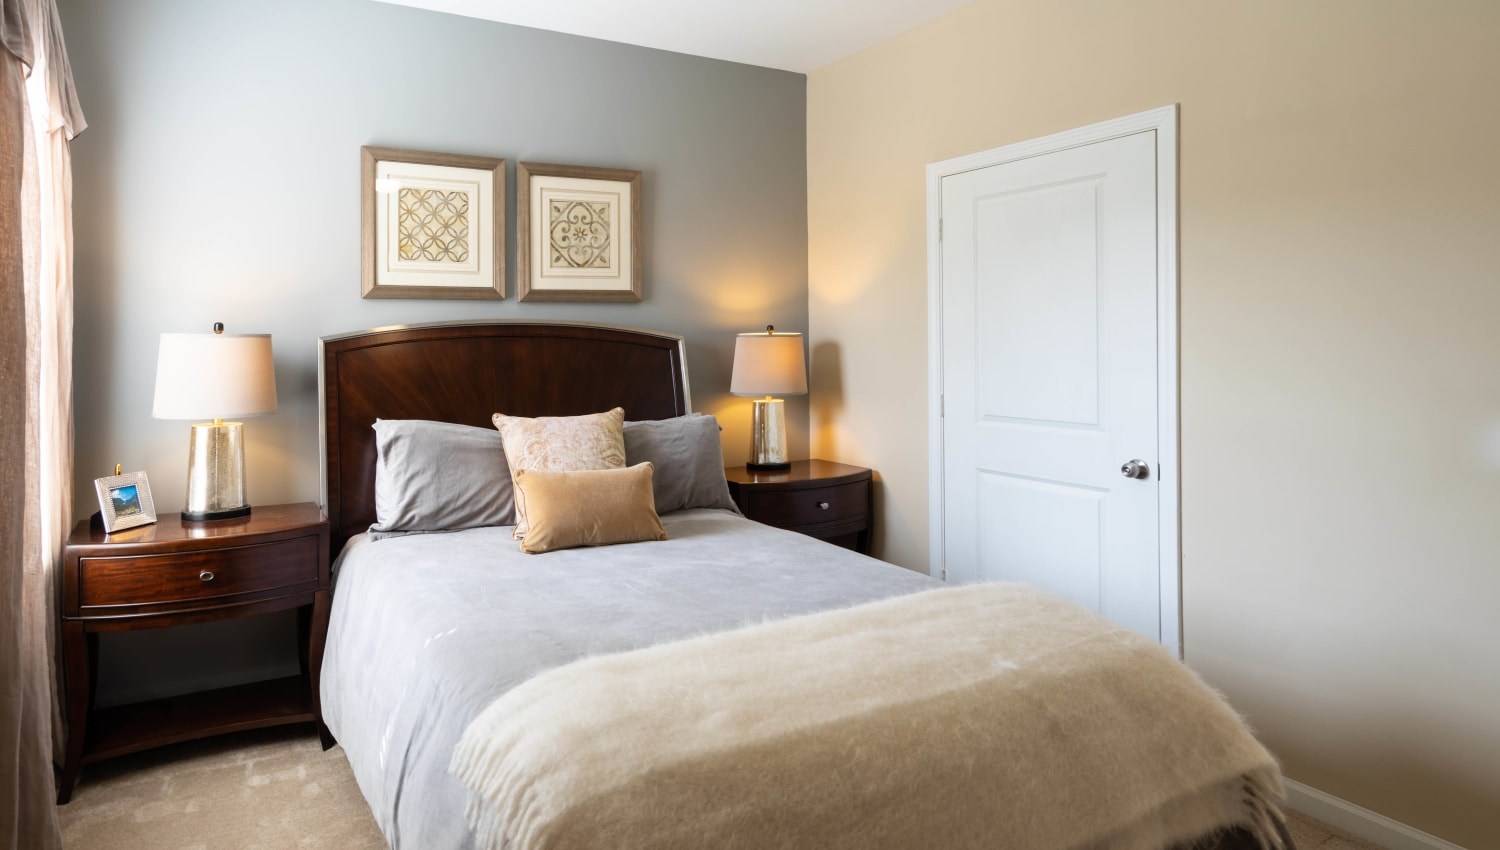 Model home's bedroom with a ceiling fan at Legends at White Oak in Ooltewah, Tennessee